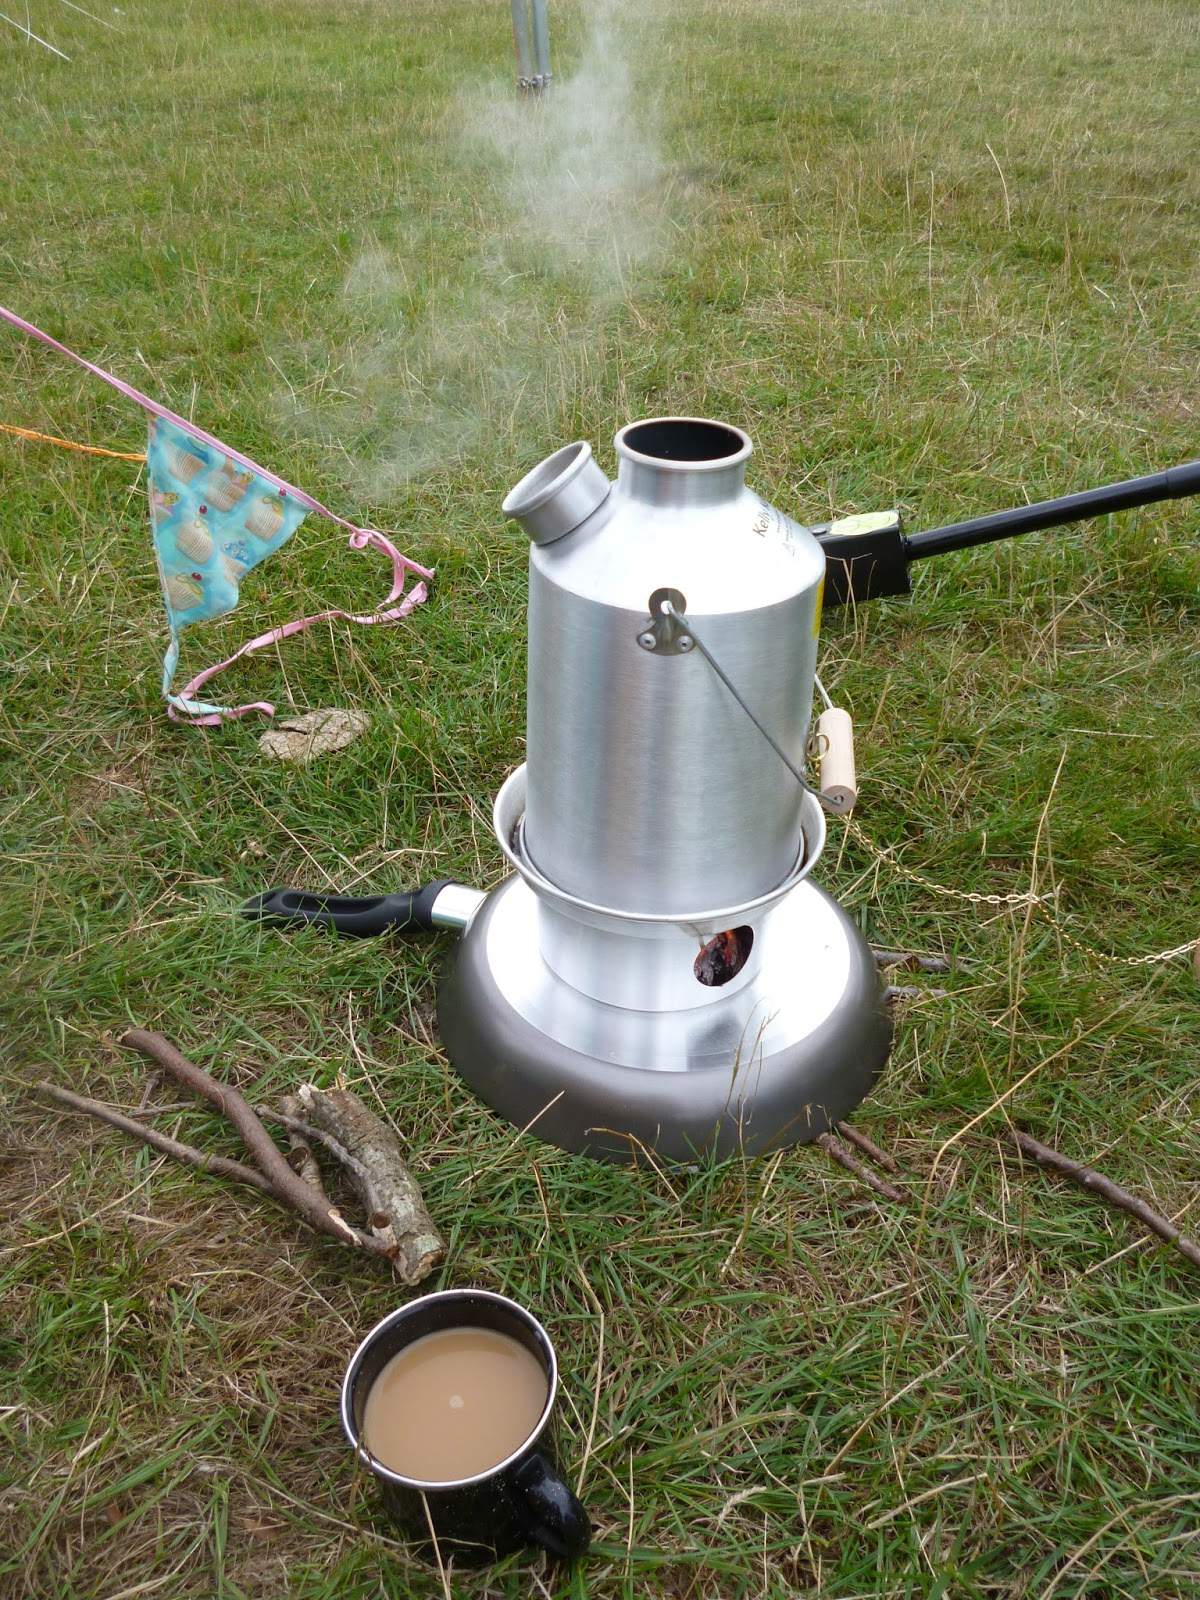 Kelly kettle storm kettle cup of tea camping